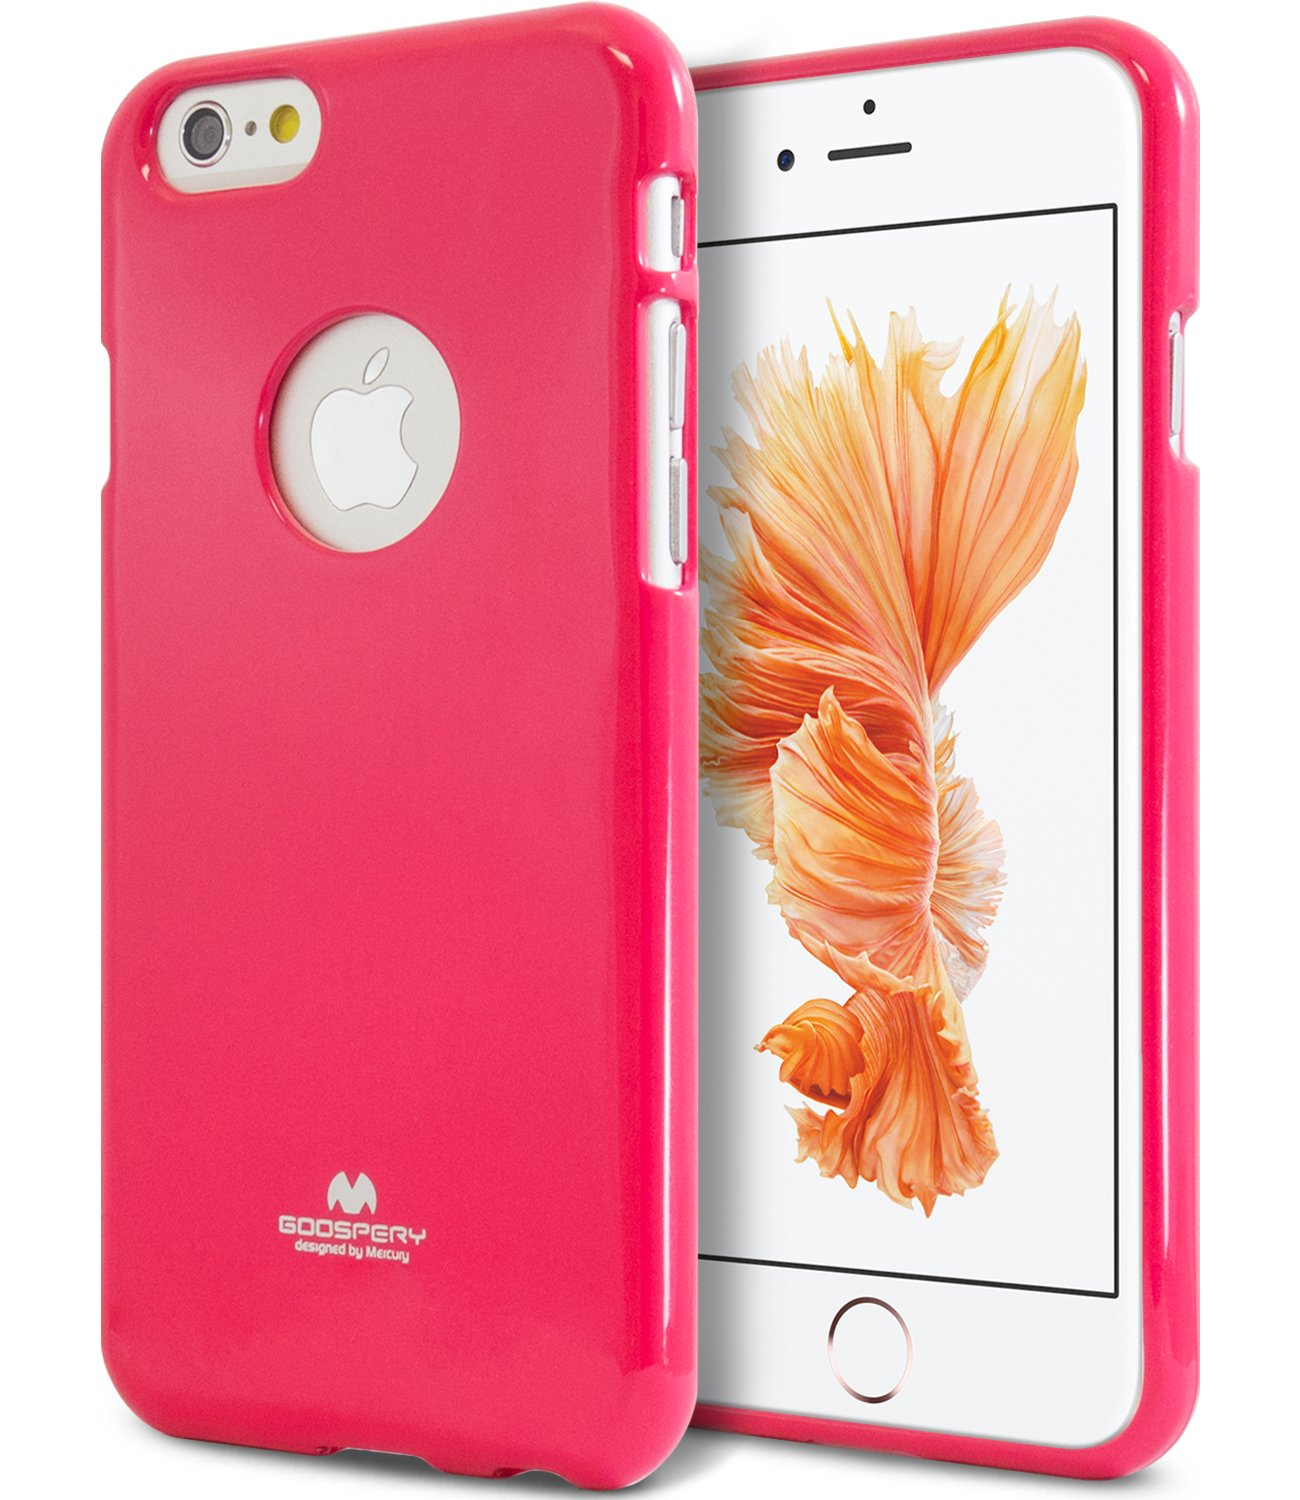 Iphone 6 Case 6s Thin Slim Goospery 8 Plus Pearl Jelly Mint Flexible Color Rubber Tpu Lightweight Bumper Cover For Apple